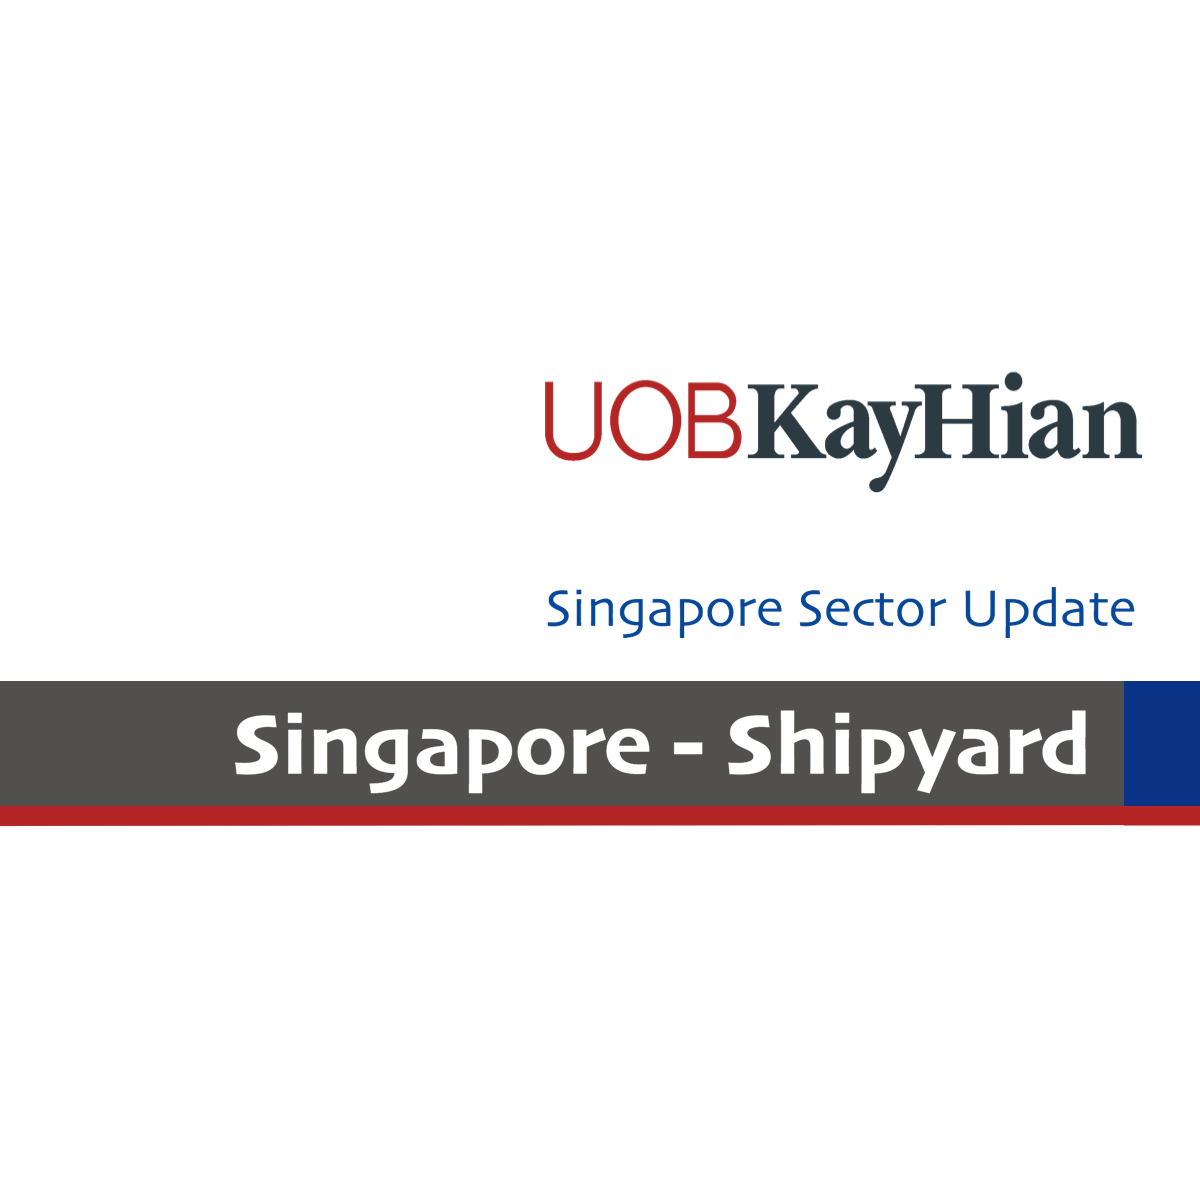 Shipyards – Singapore - UOB Kay Hian 2018-01-02: Dealing With The Kickbacks